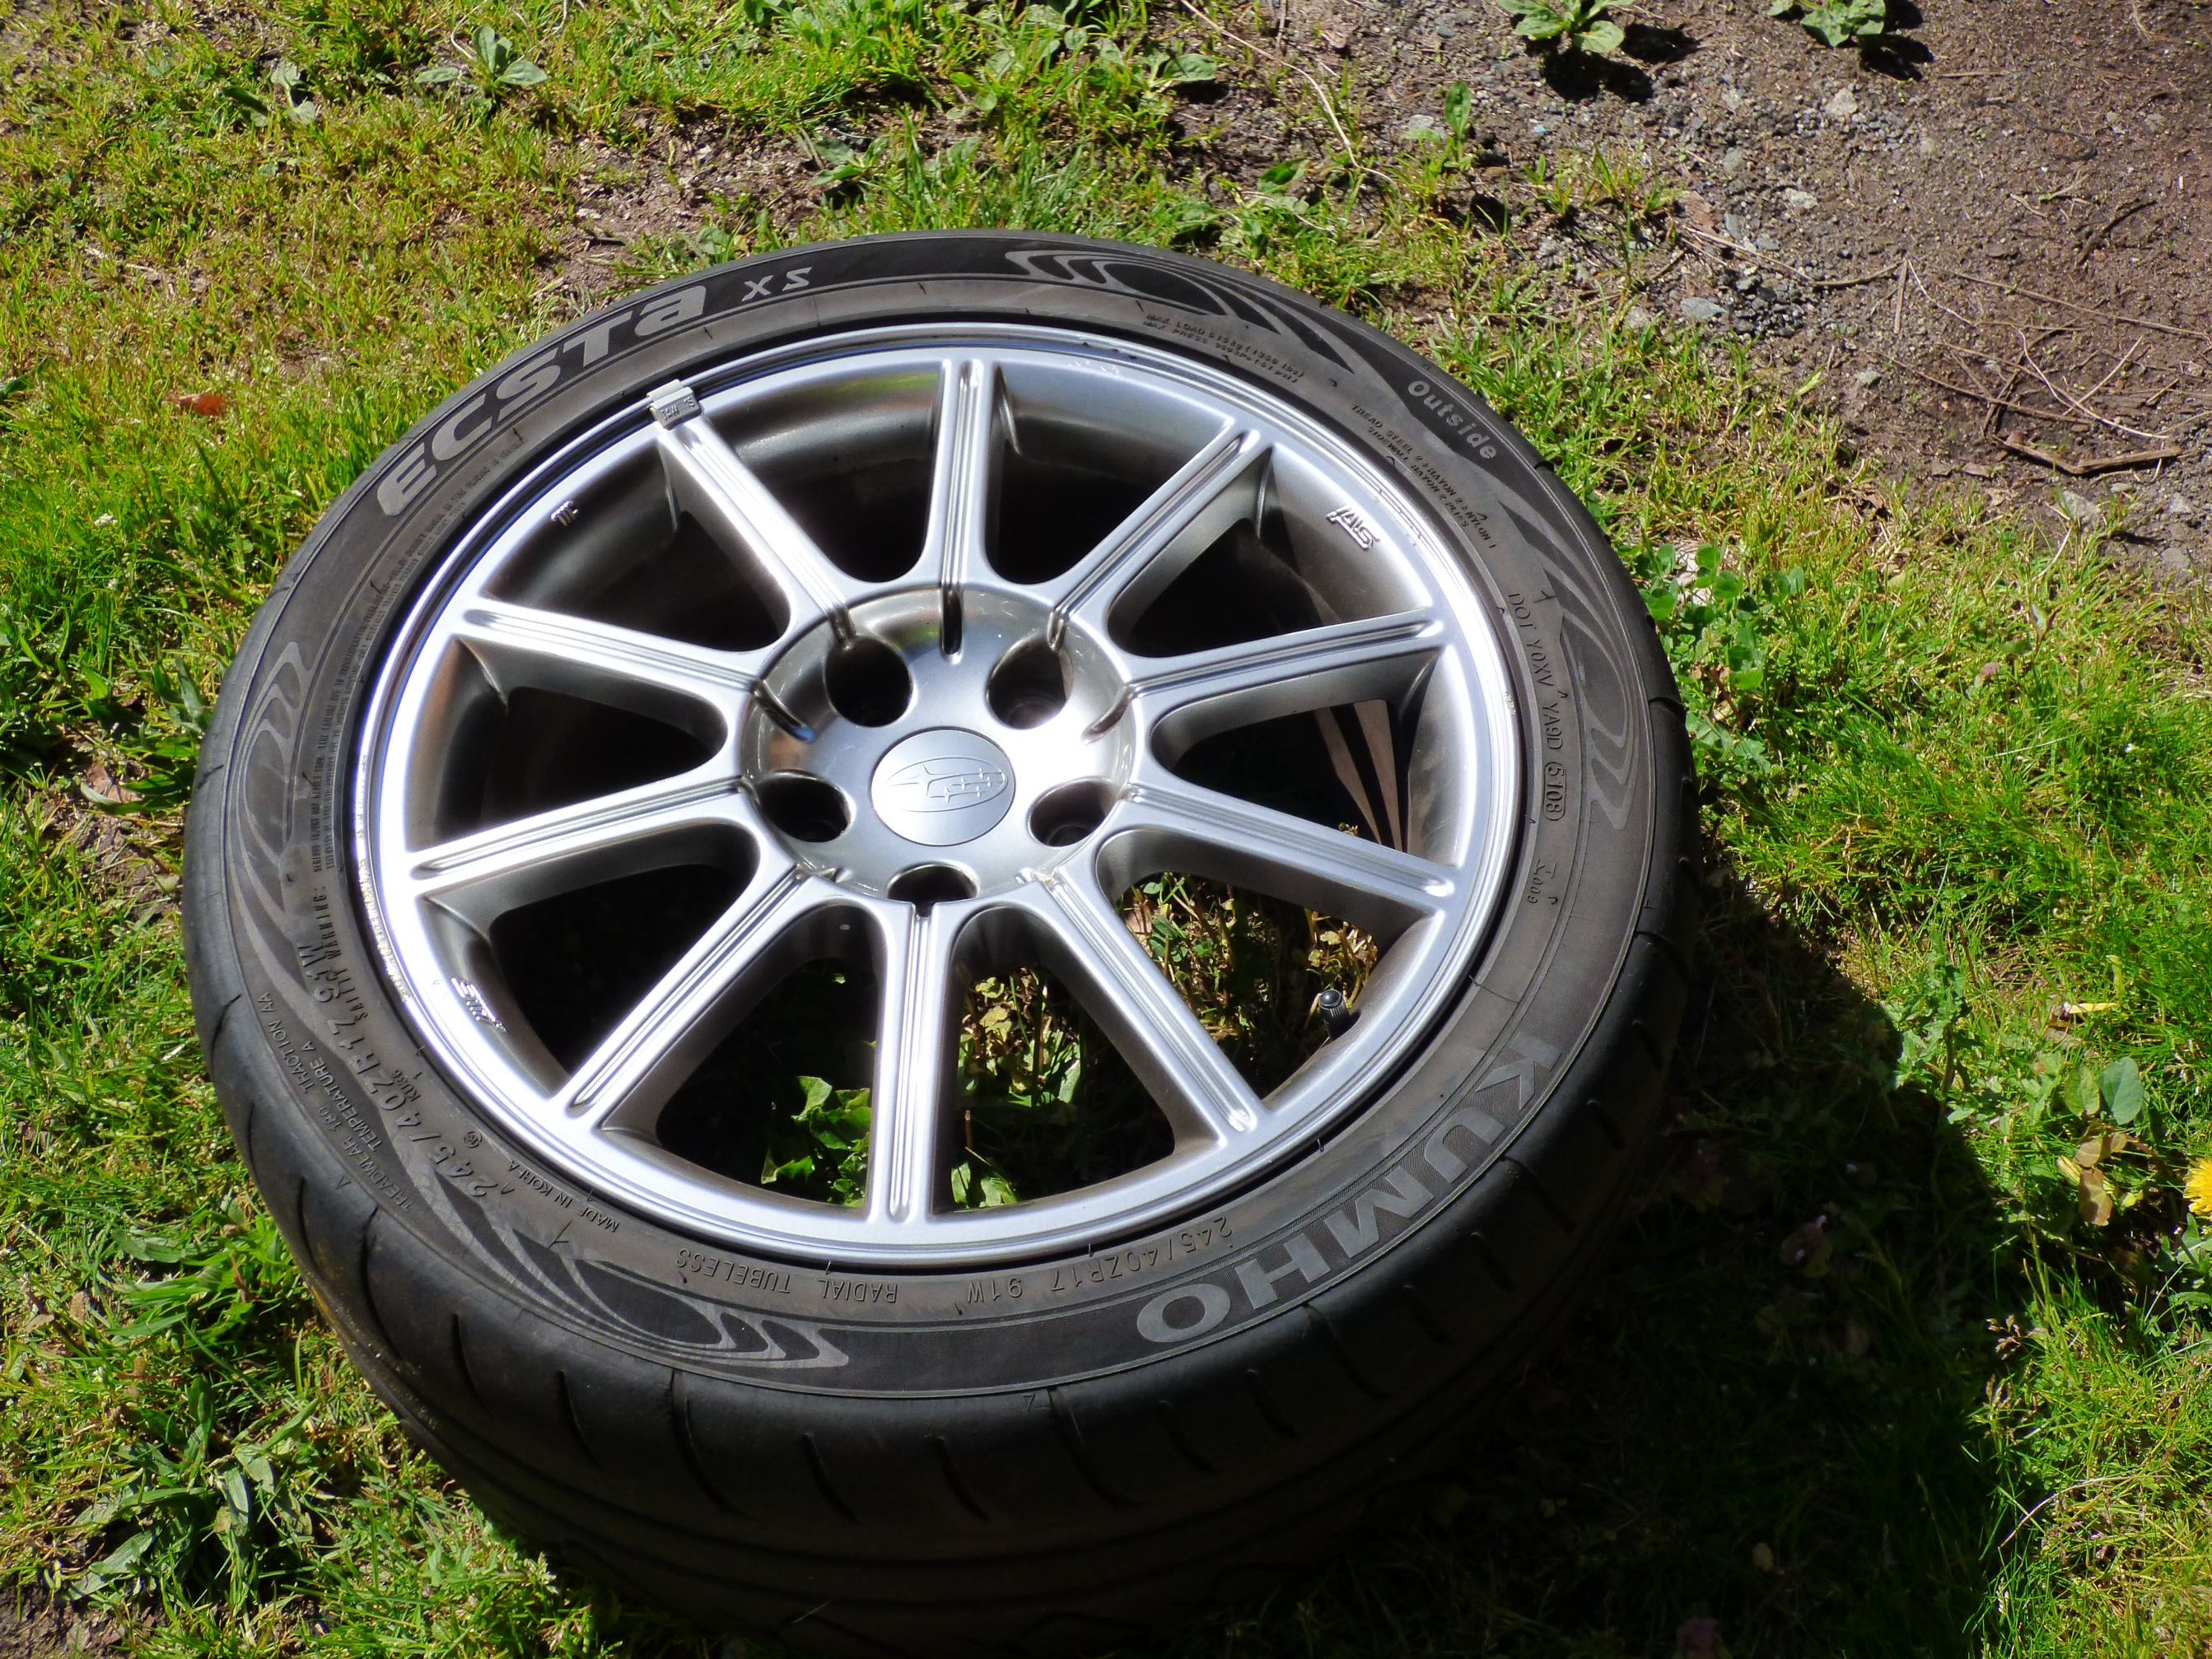 2007 STI Wheels and STU tires for sale-sti-wheel-kumho-xs-tire-jpg